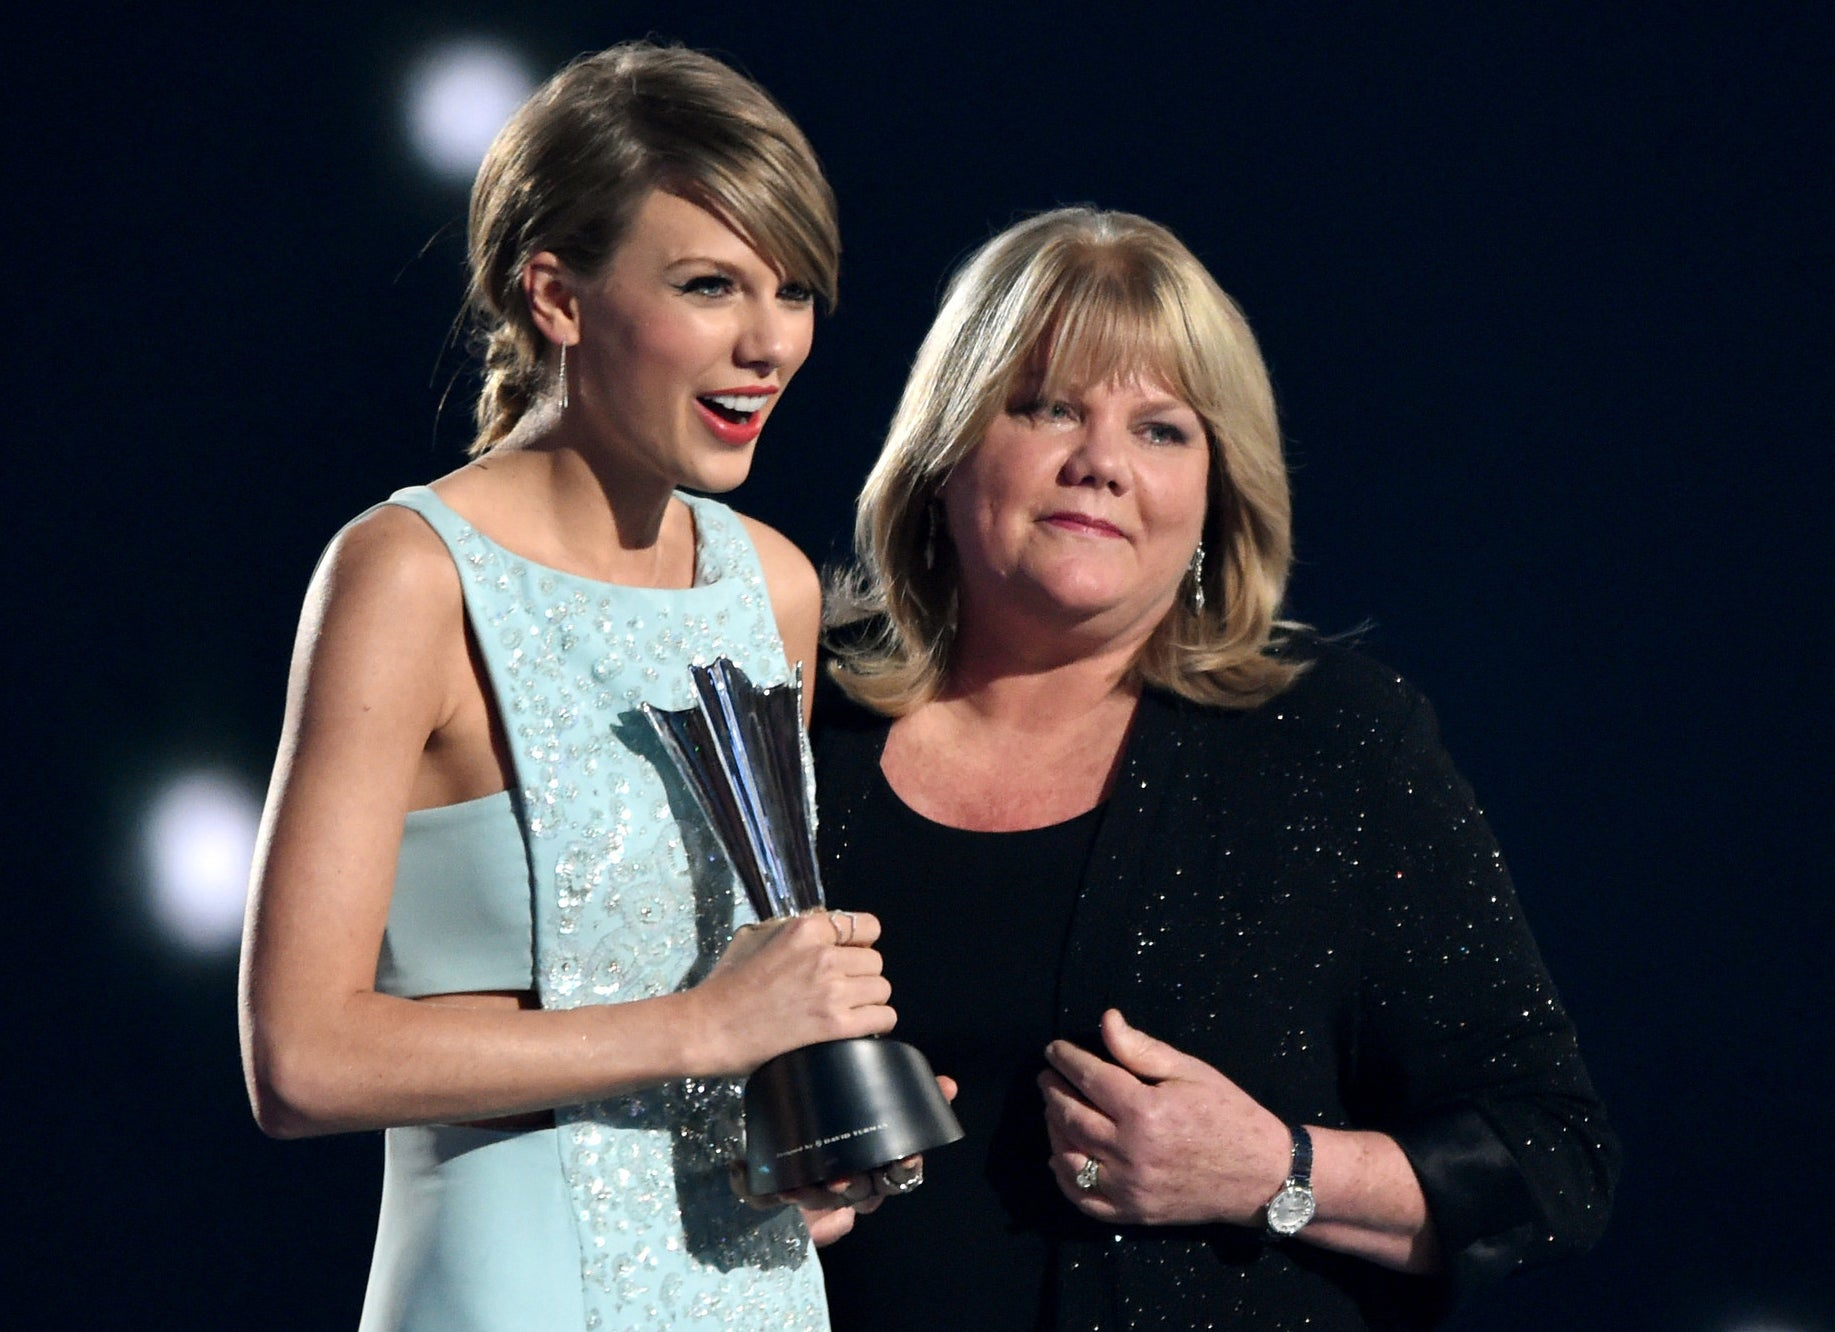 Taylor poses with her mom onstage